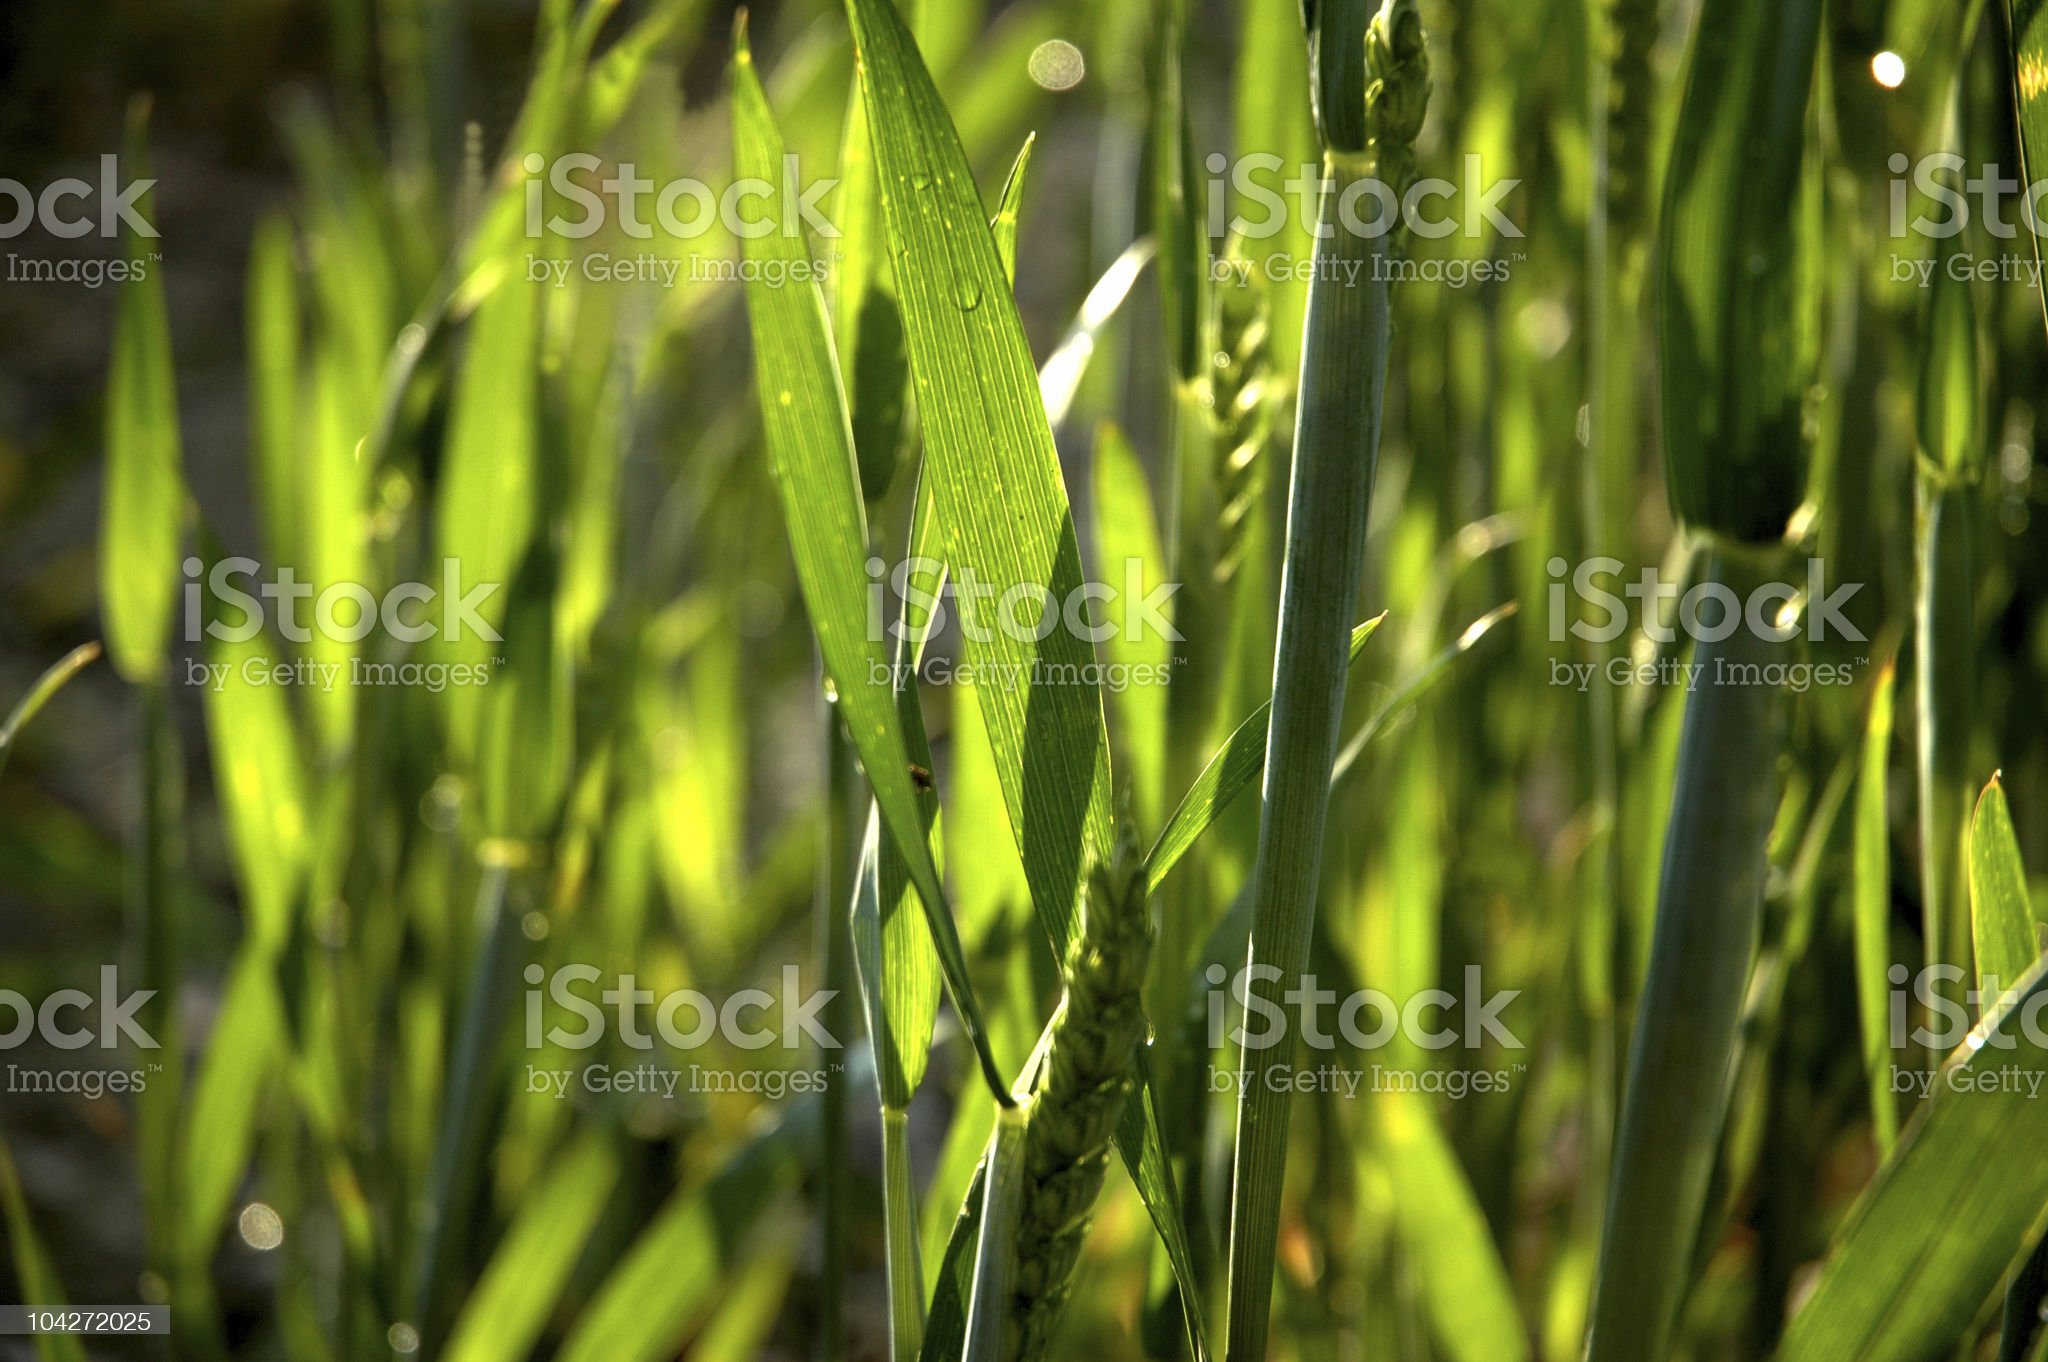 Wheat after the rain close-up royalty-free stock photo